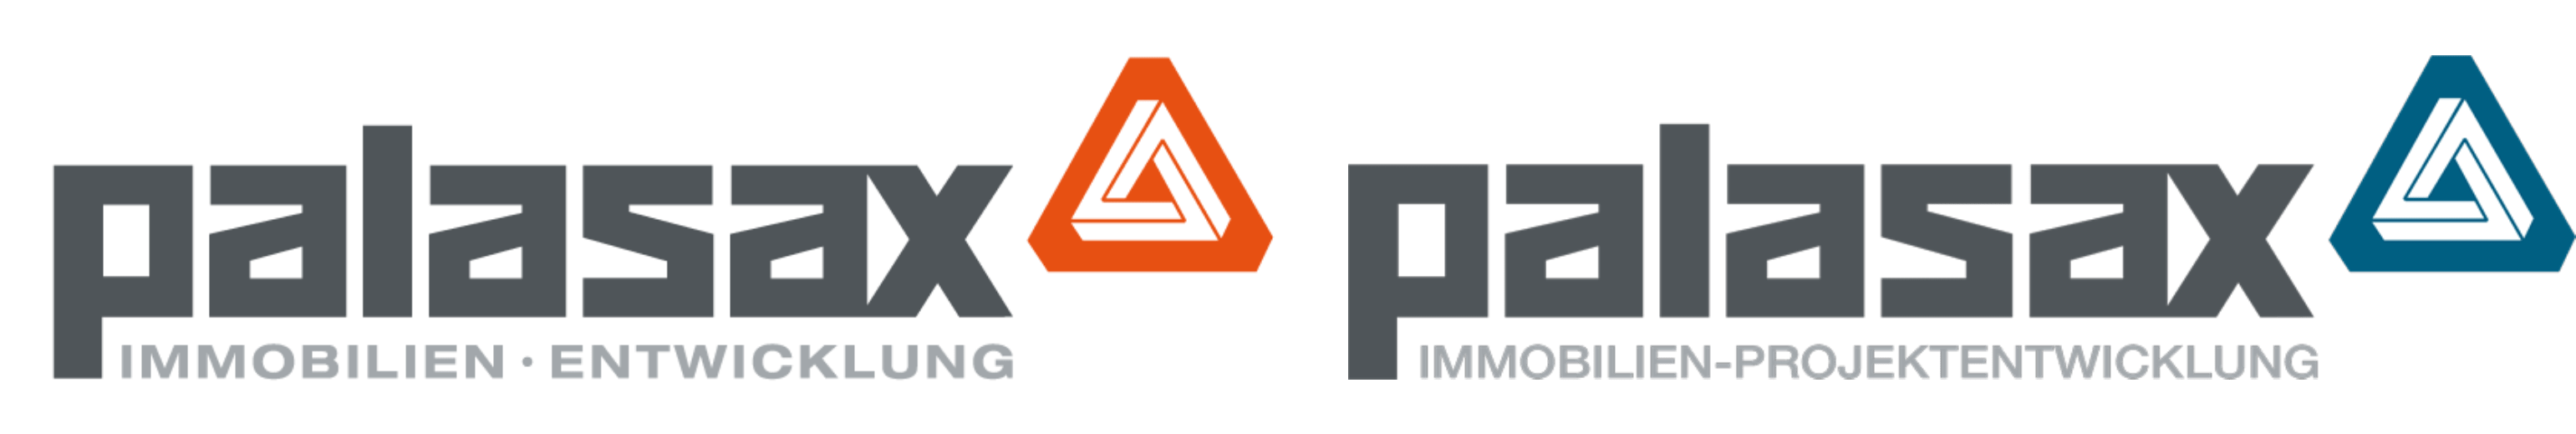 PALASAX Immobilienentwicklung GmbH & Co. KG